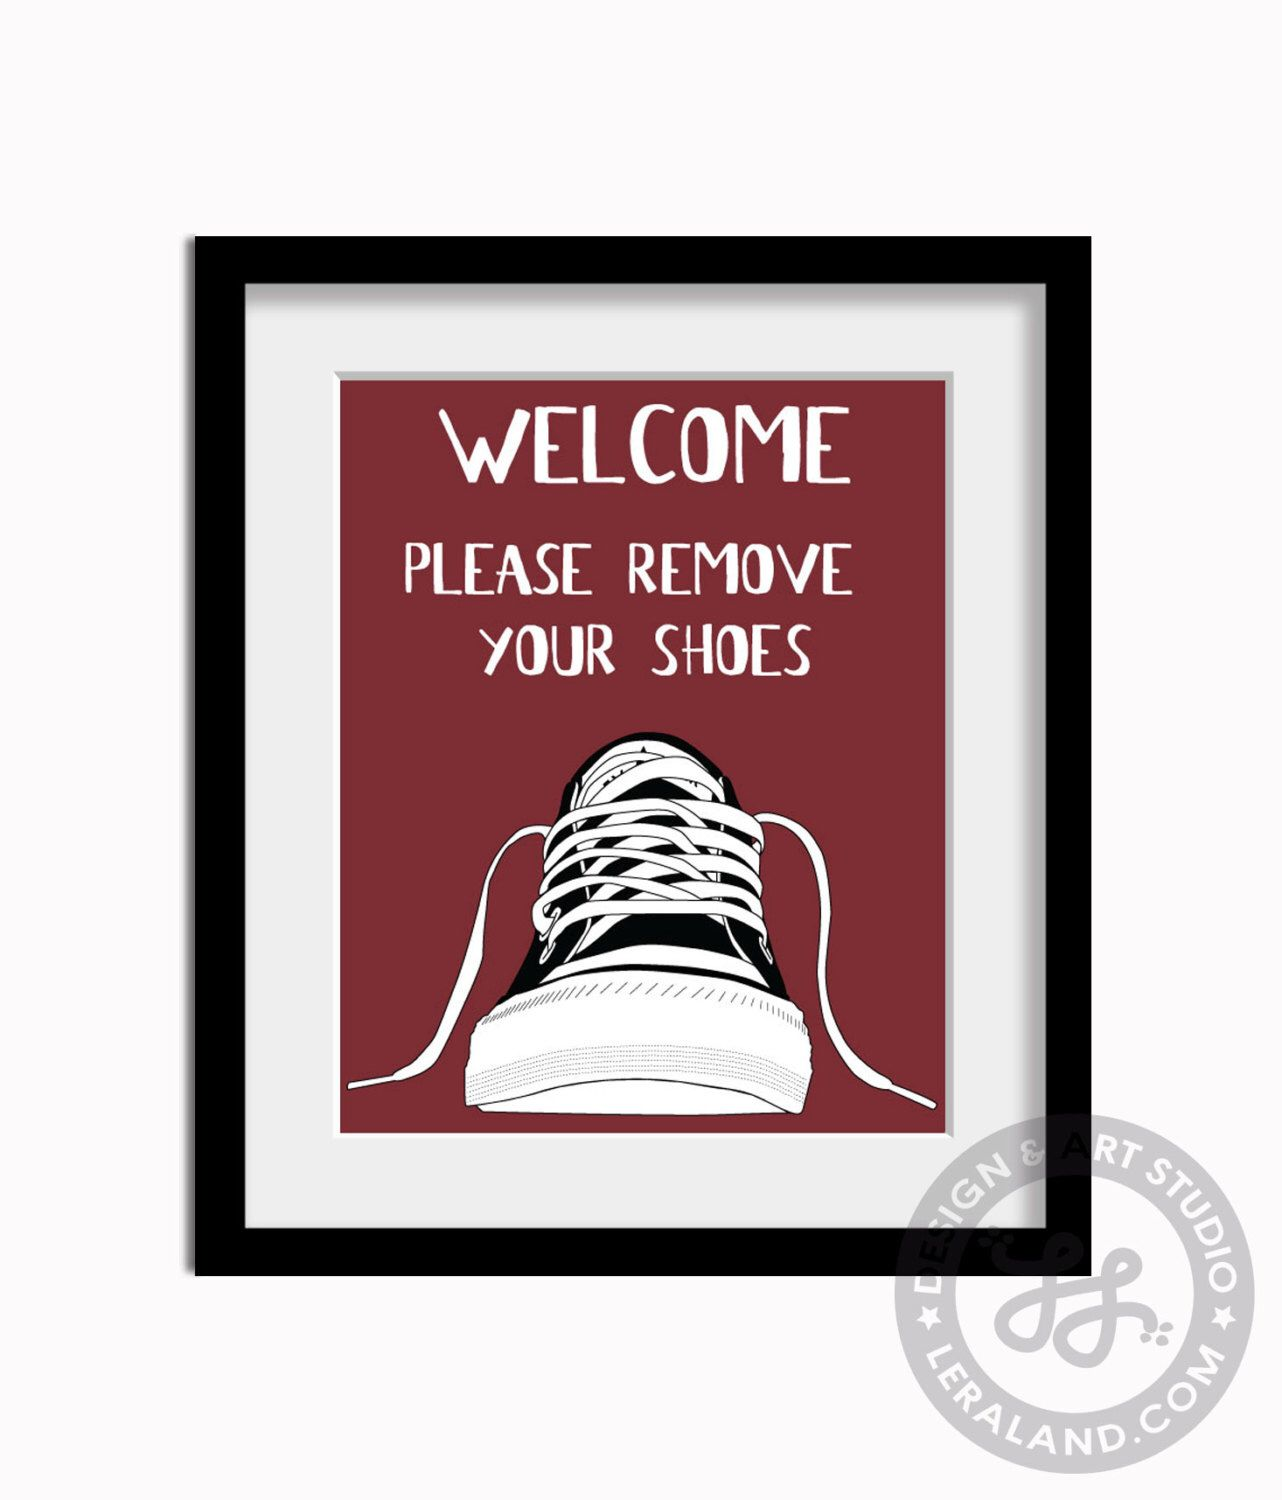 Welcome please remove your shoes, 11x14 or 8x10, Converse shoe, Sign pop art